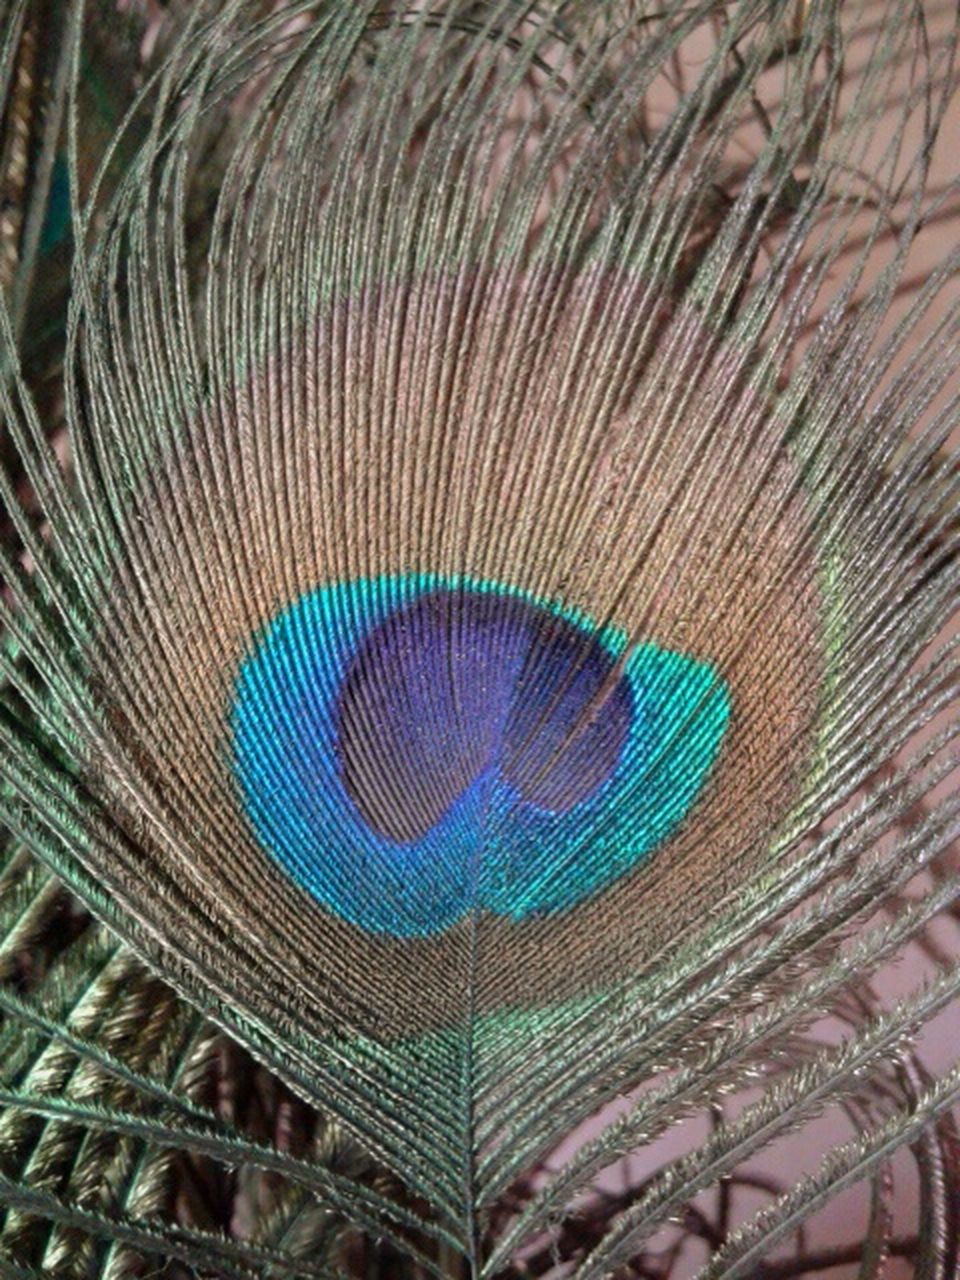 peacock feather, peacock, feather, bird, close-up, softness, fragility, beauty in nature, fanned out, nature, no people, multi colored, blue, lightweight, backgrounds, animal themes, full frame, one animal, beauty, vanity, outdoors, day